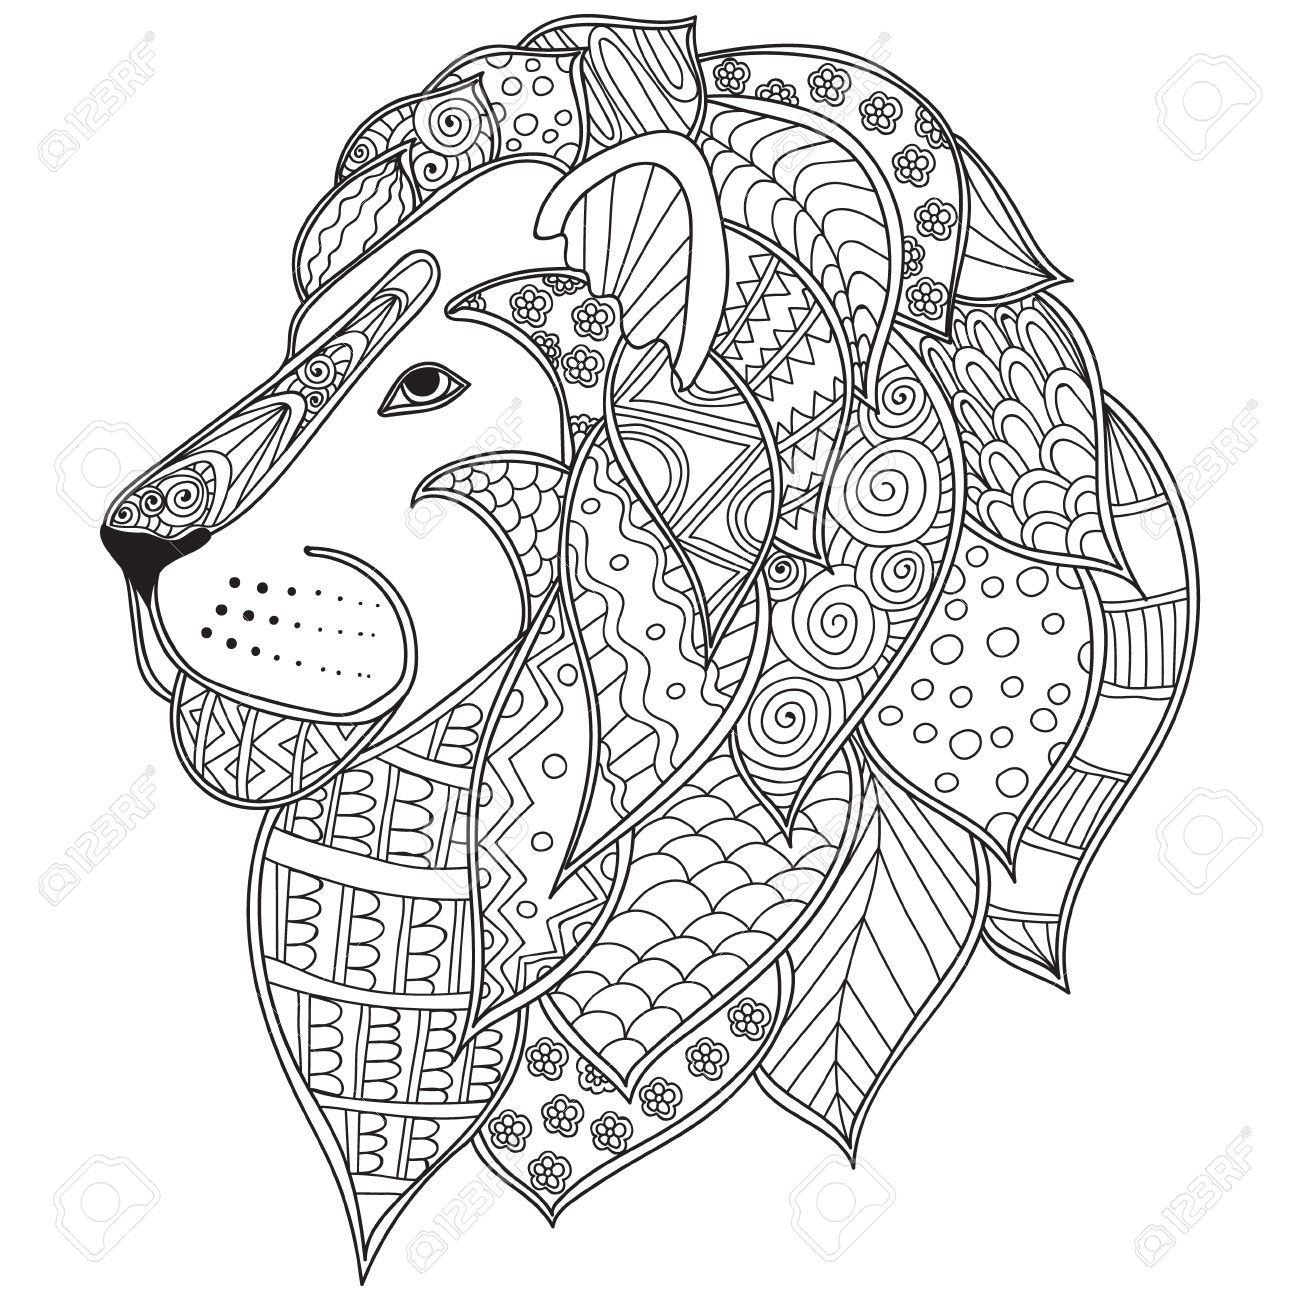 Download Stock Vector | Coloring pages, Animal coloring pages